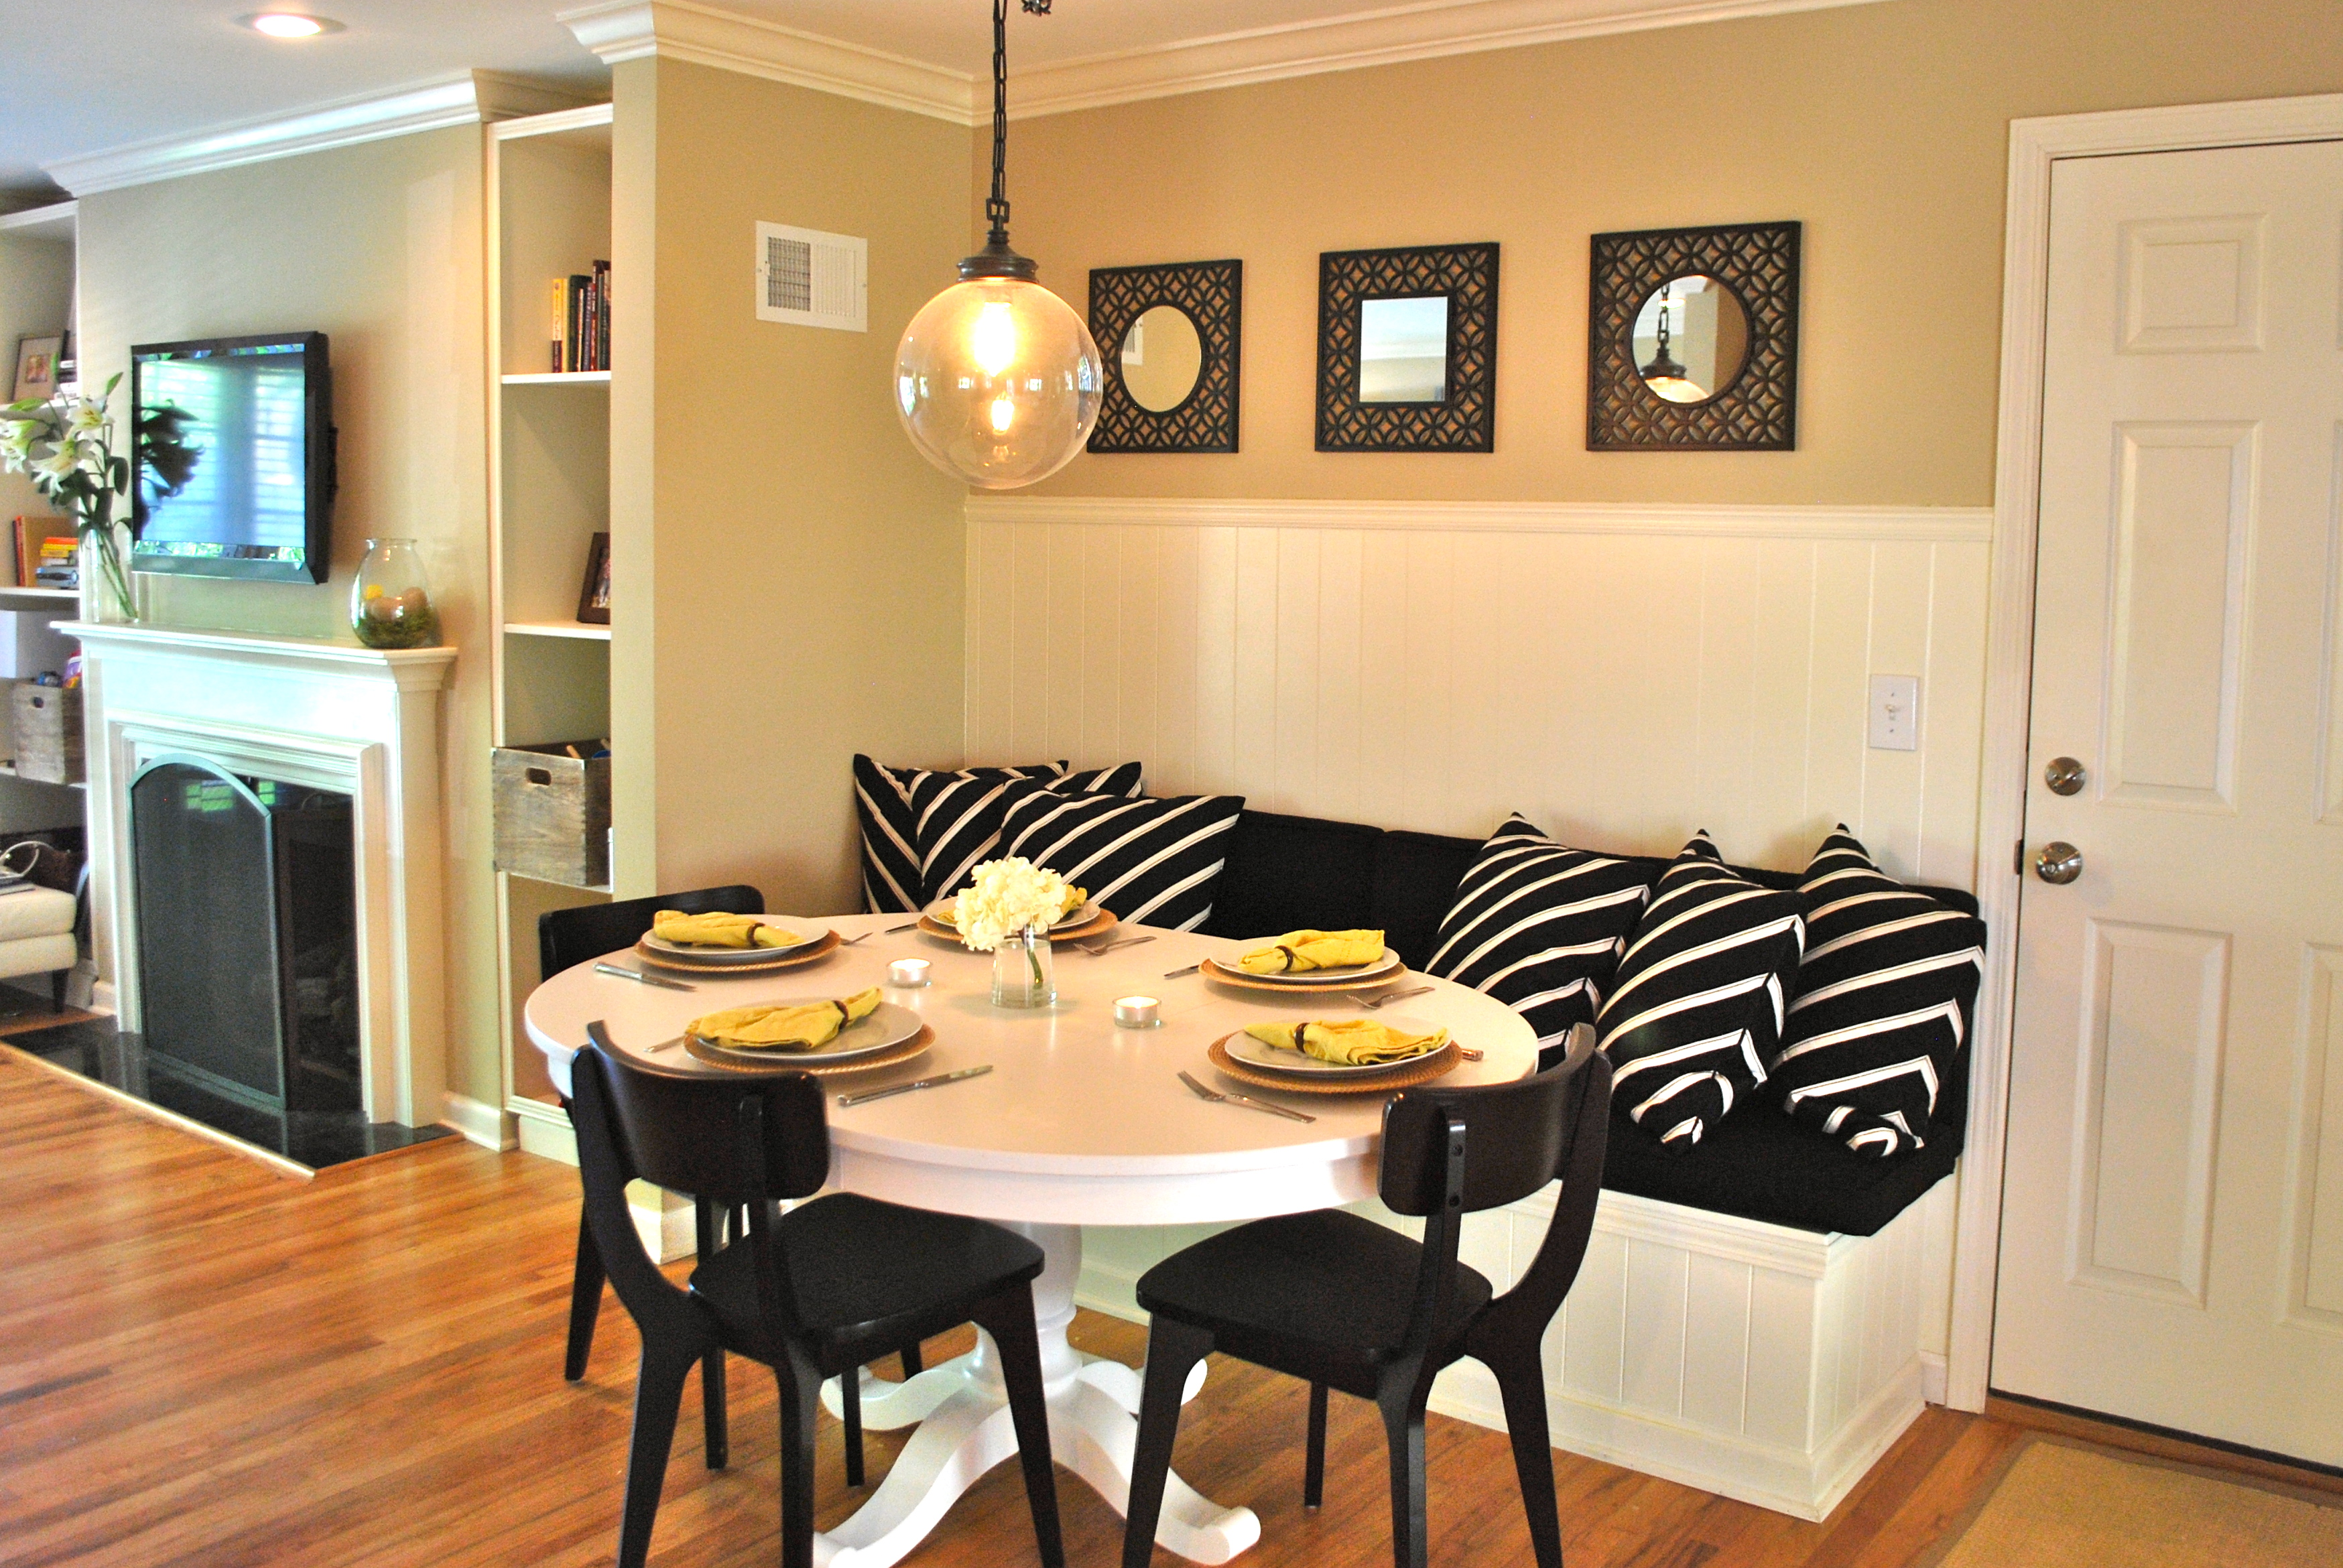 Diy kitchen banquette part 2 the suburban urbanist - Built in kitchen banquette designs ...